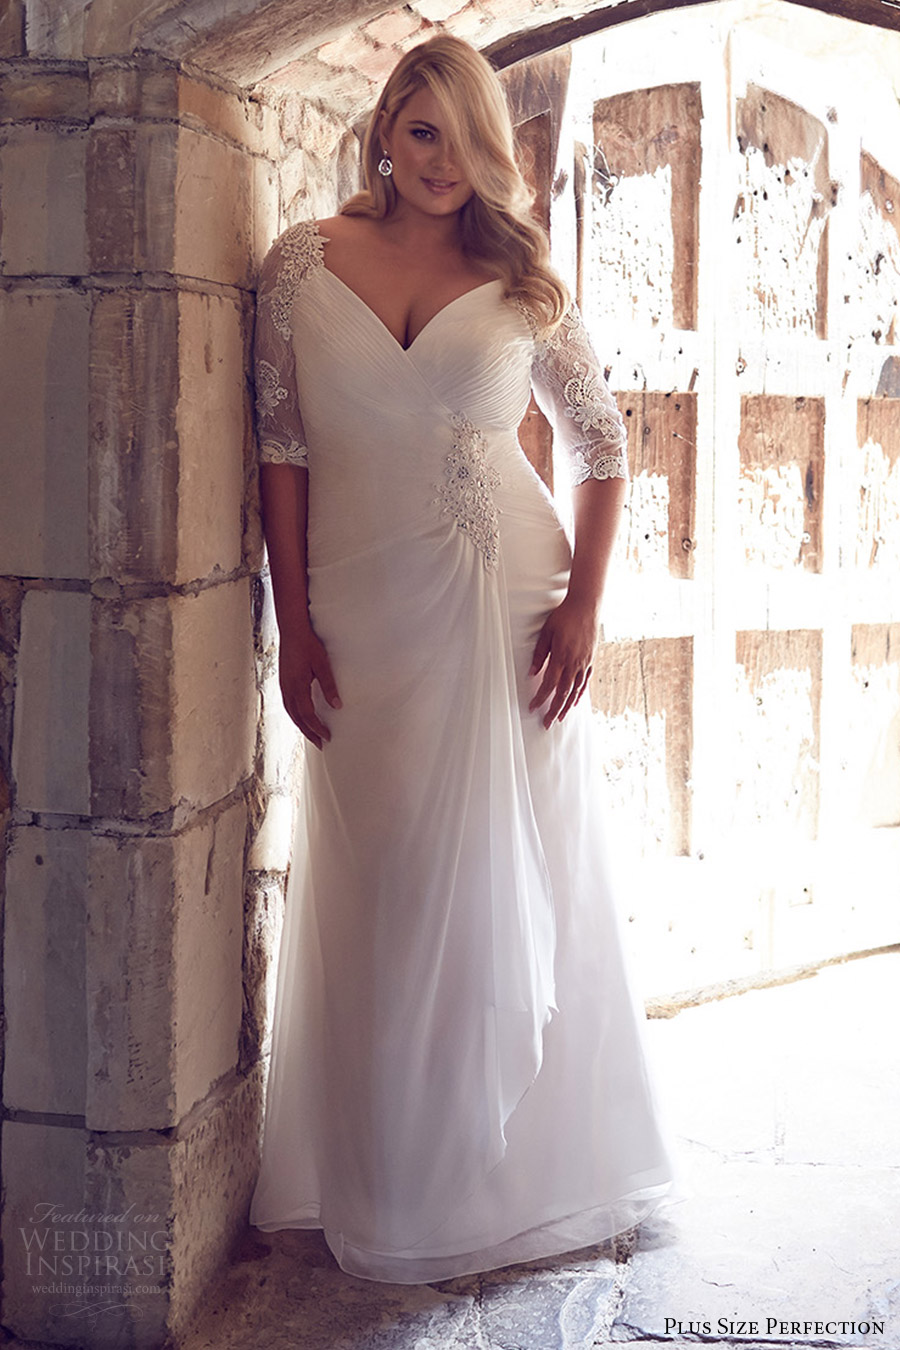 plus size perfection bridal 2016 illusion 3 quarter sleeves vneck draped skirt ruched bodice a line wedding dress (odessa) zv romantic elegant